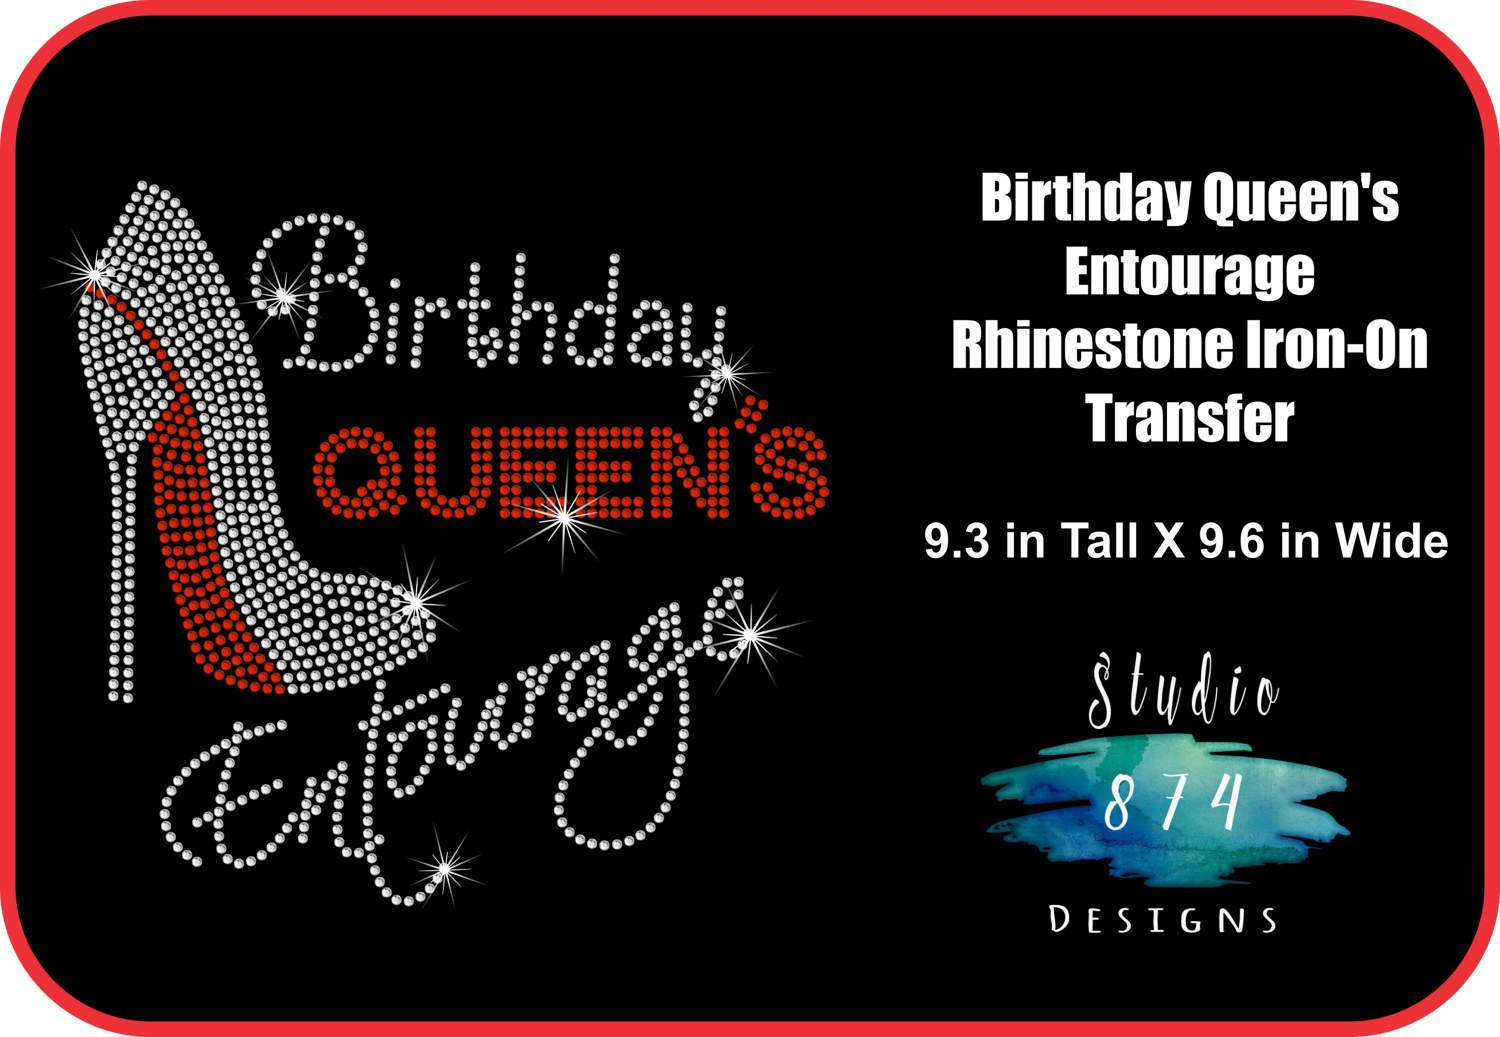 eafcef9359e9 BIRTHDAY Queen's Entourage Rhinestone Bling Iron-on Transfer Applique - GNO  - Shoe Girls Night Out T-shirt - Bling DIY by Studio874Designs on Etsy